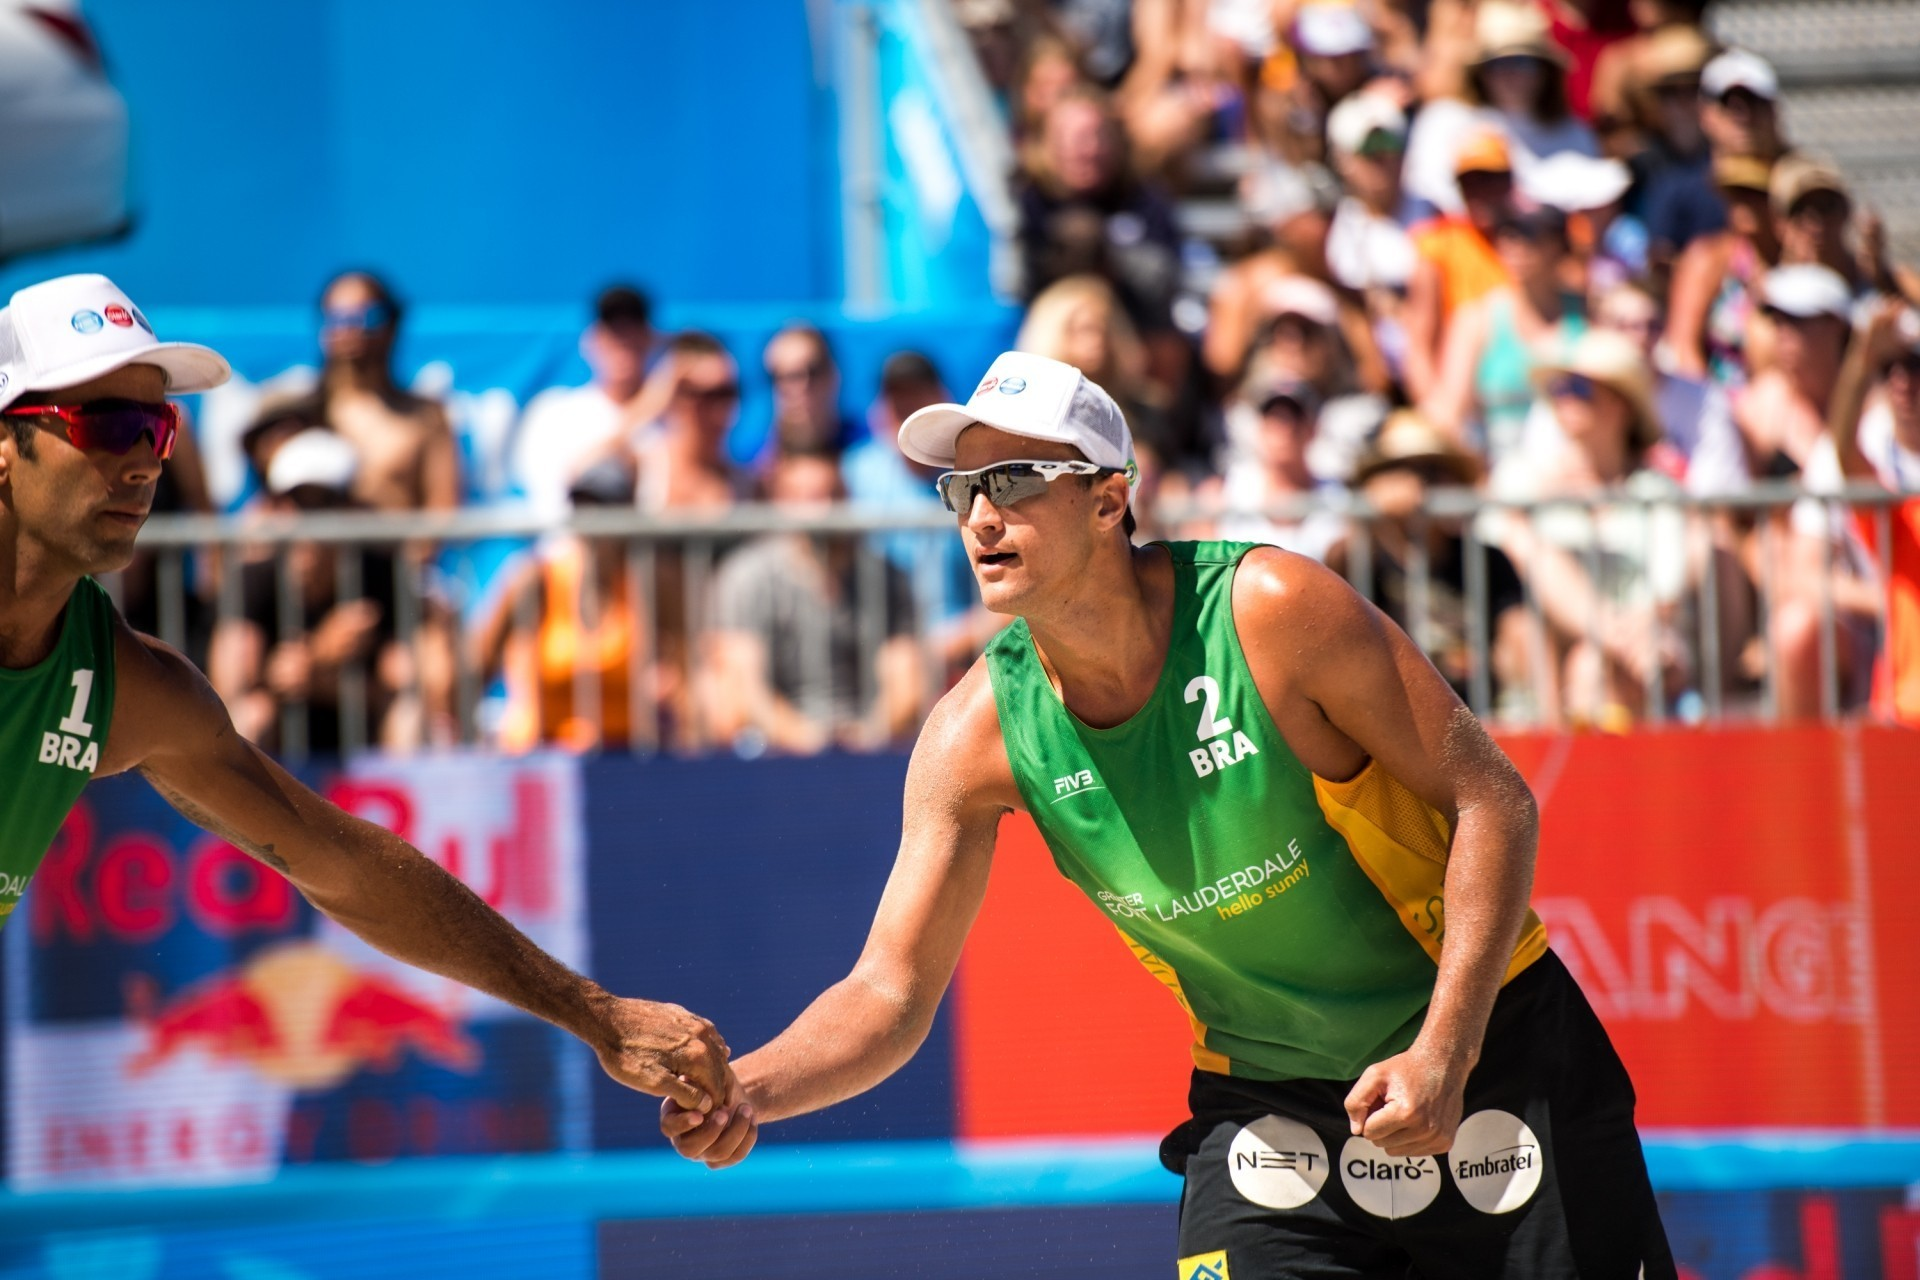 George Wanderley, will team-up with André following the latest shake-up in Brazilian beach volleyball